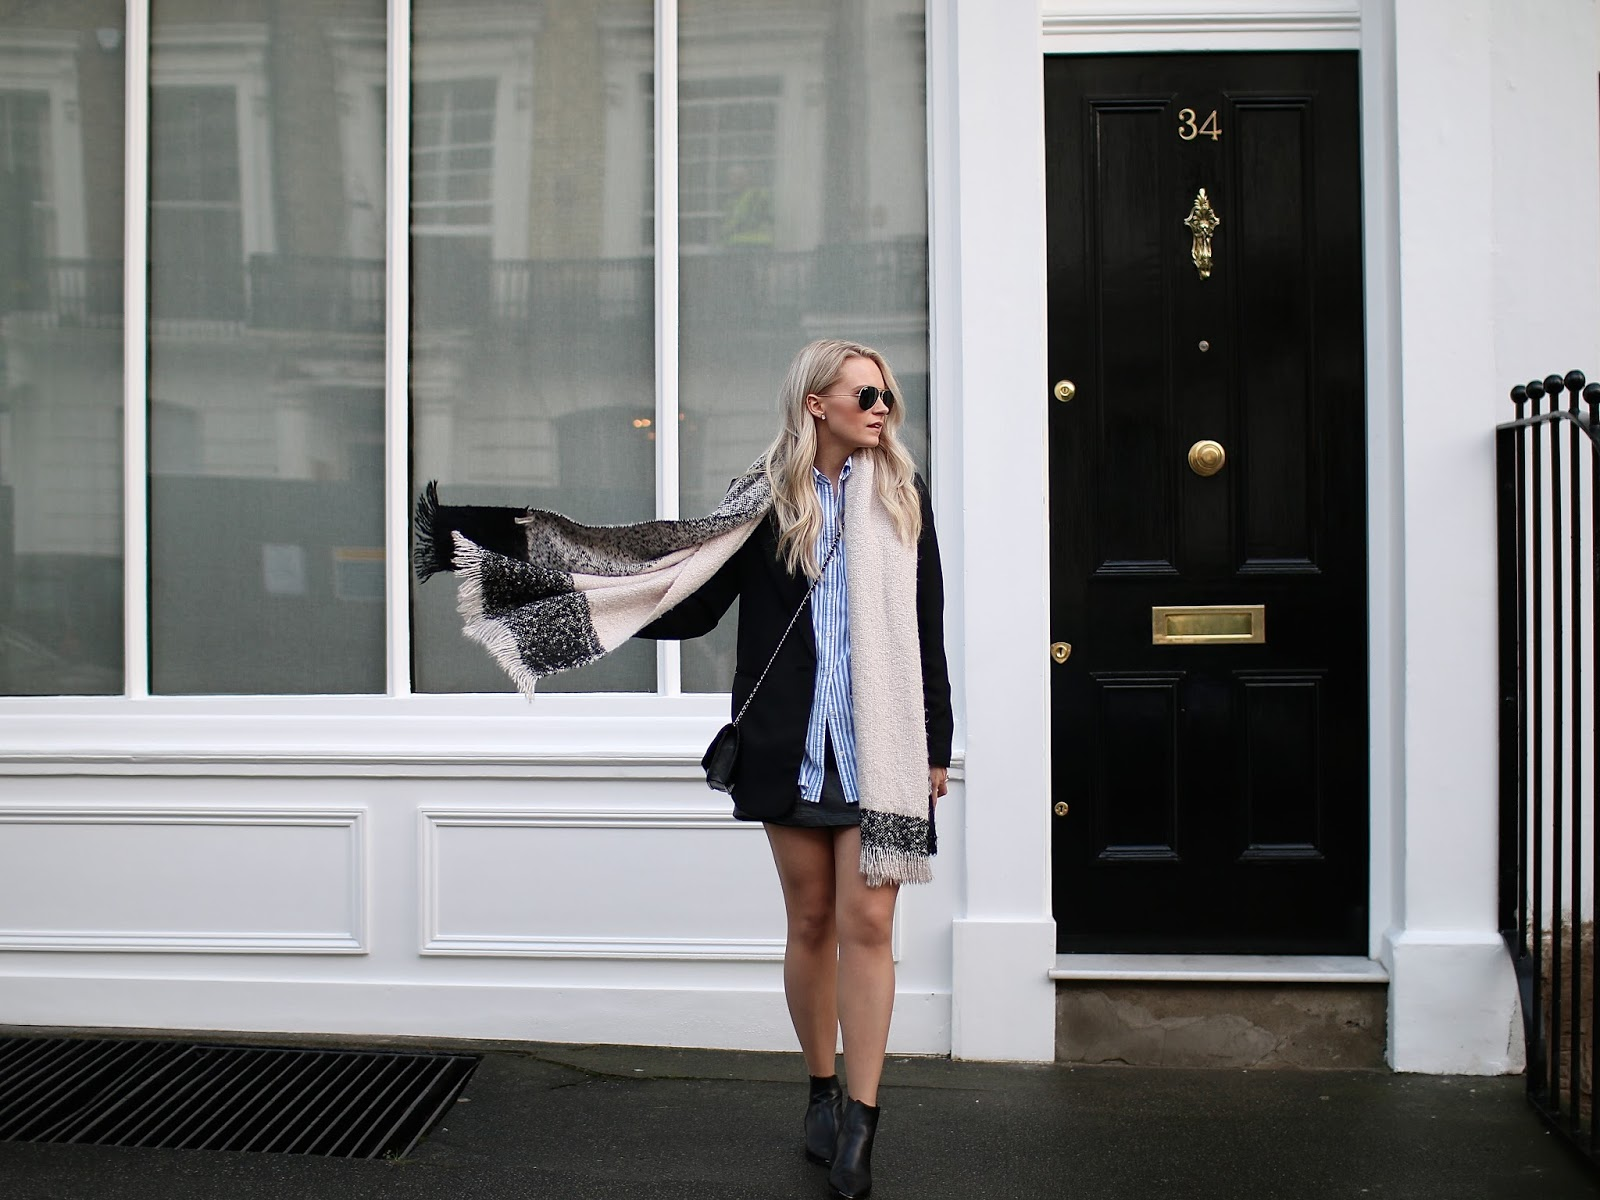 a blond women wearing striped button down shirt on notting hill, flips her scarf in the wind